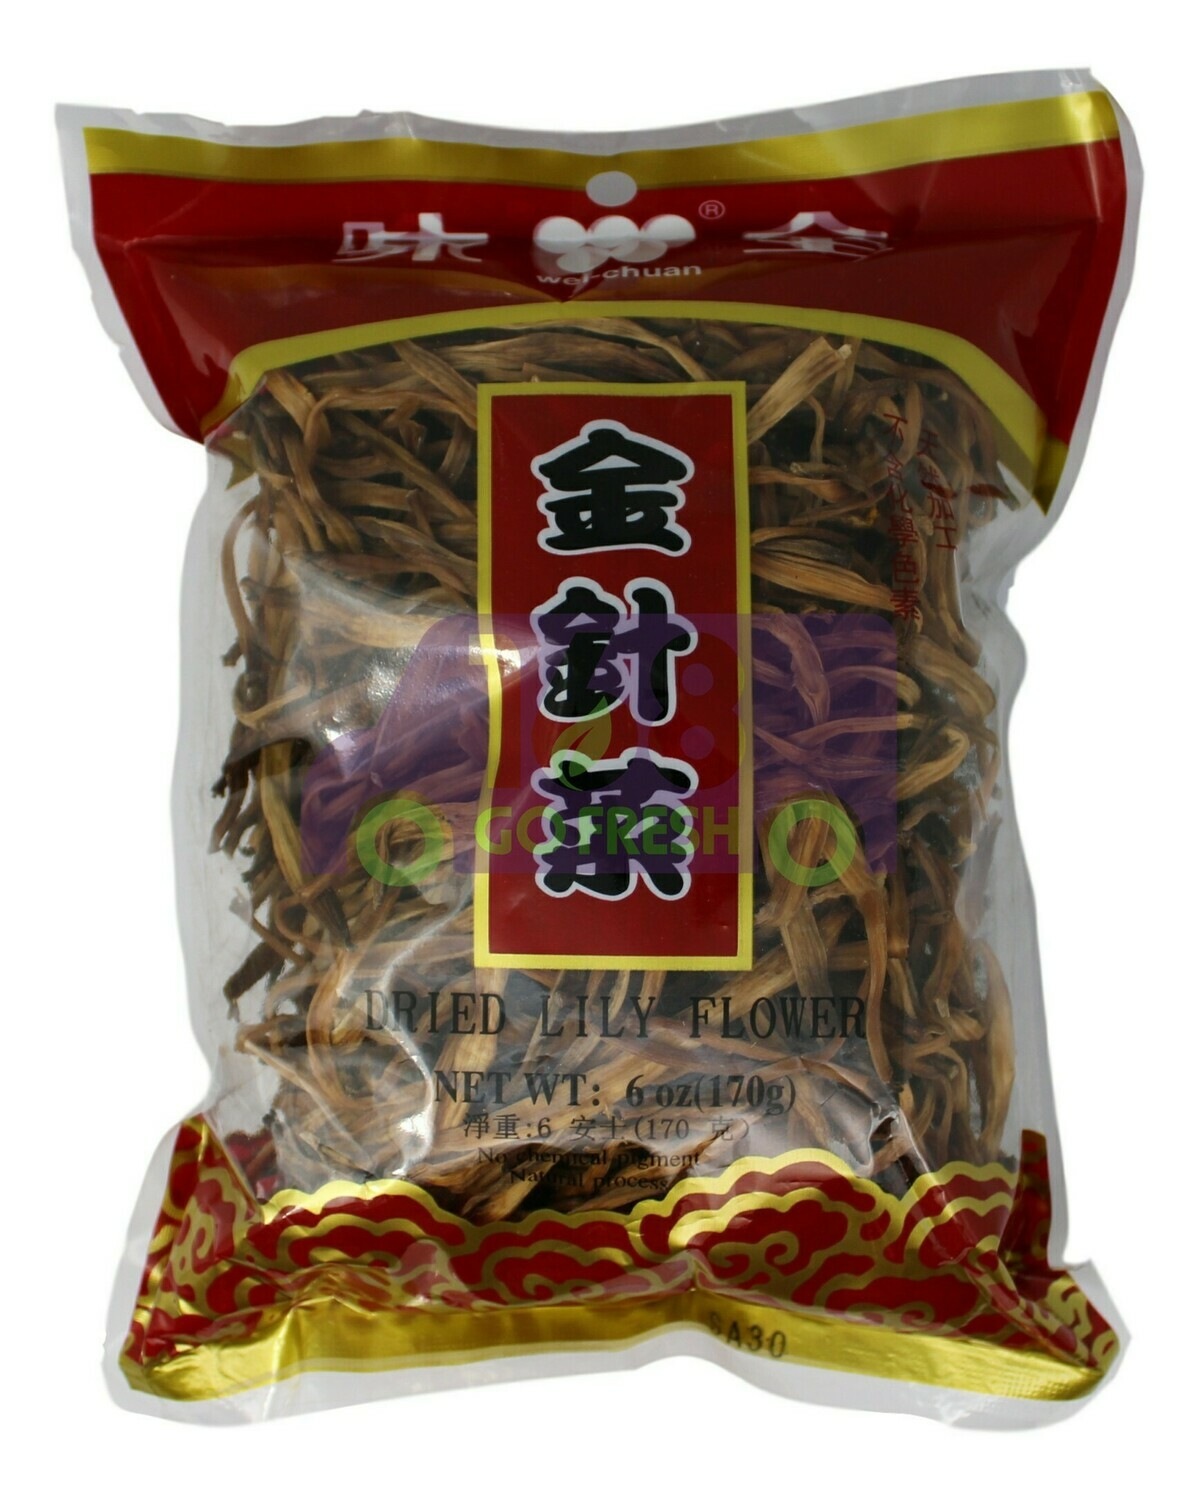 DRIED LILY FLOWER 味全 金针菜(6OZ)